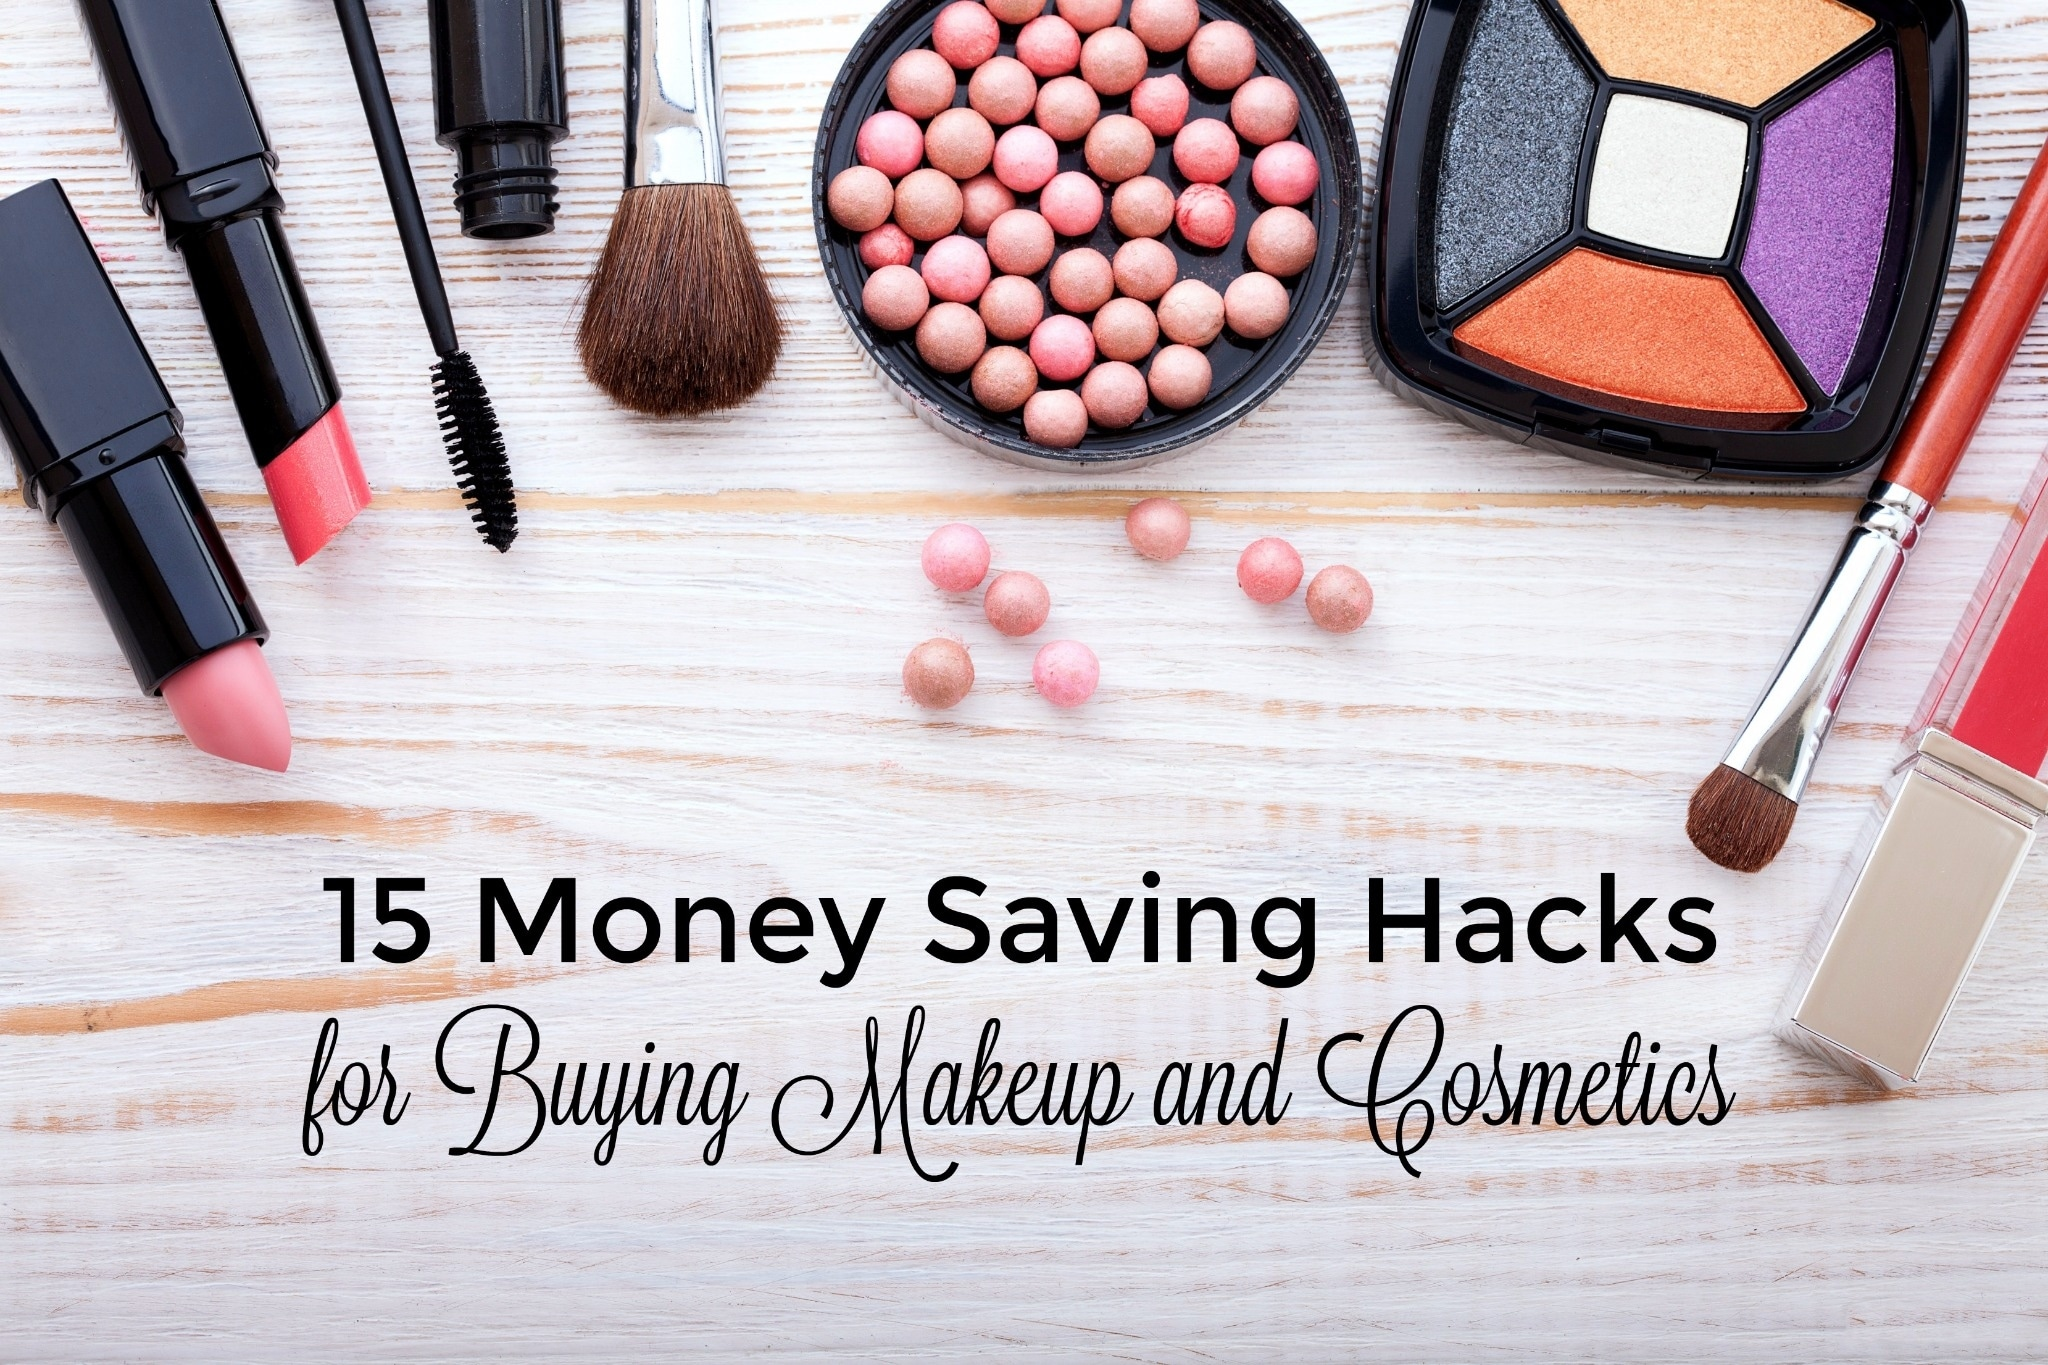 15 Money Saving Hacks for Buying Makeup and Cosmetics